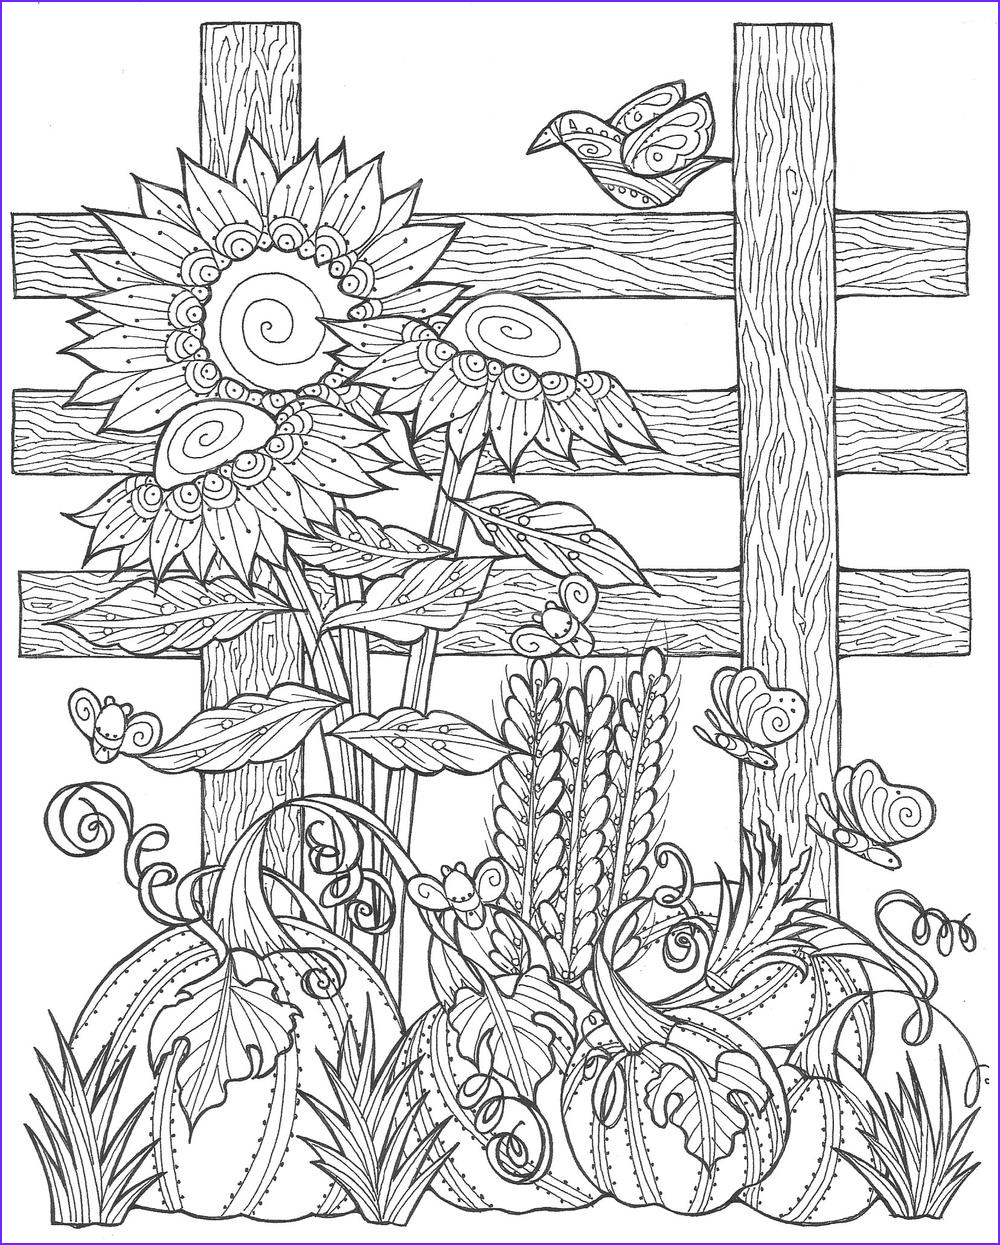 Pumpkin Patch Coloring Page Printable New Photography Sunflower Pumpkin Patch Coloring Page Pdf